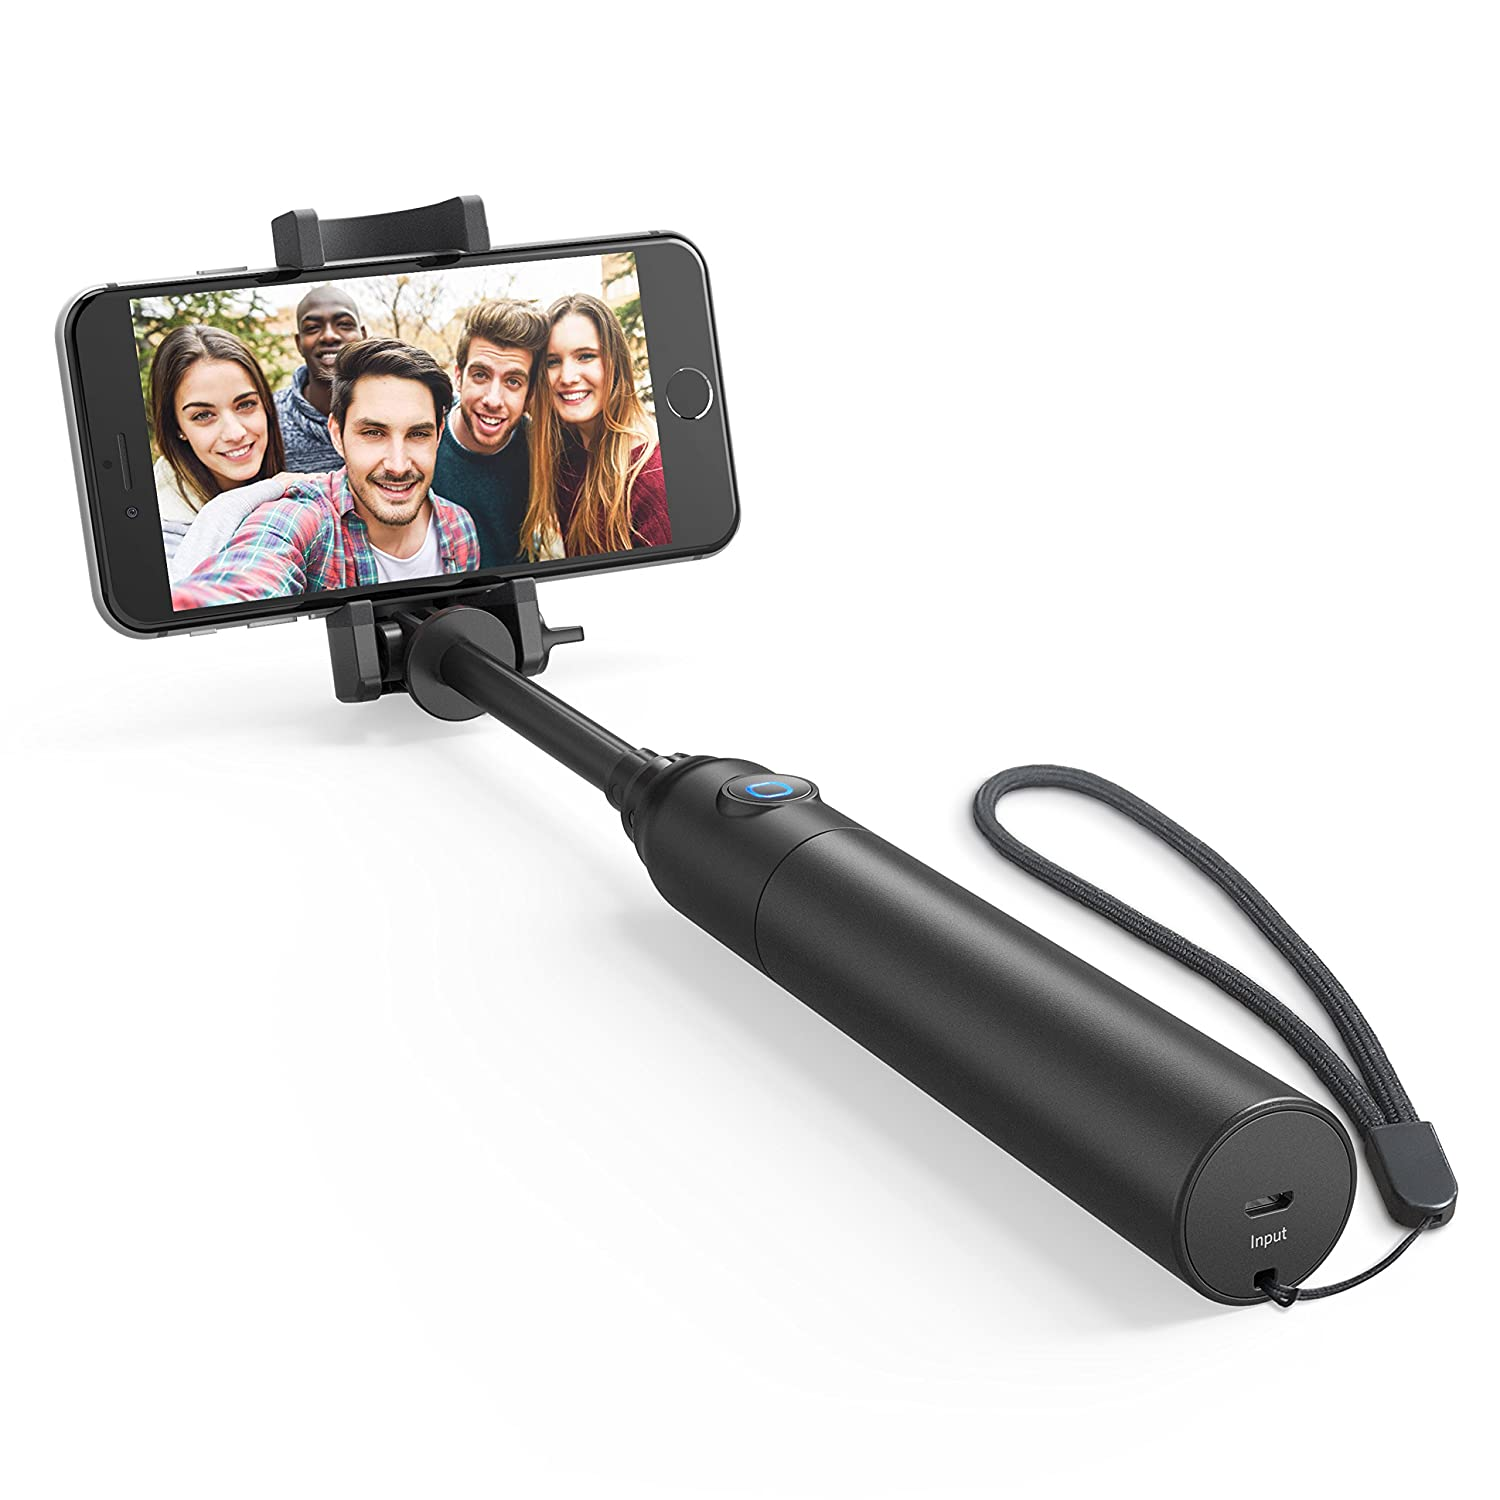 Selfie Stick, Anker Bluetooth Highly-Extendable and Compact Handheld Monopod with 20-Hour Battery Life for iPhone X/8/8 Plus/7/7 Plus/Se/6s/6/6 Plus, Galaxy S8/S7/S6/Edge, LG G5, Pixel 2 and More AK-A7161011